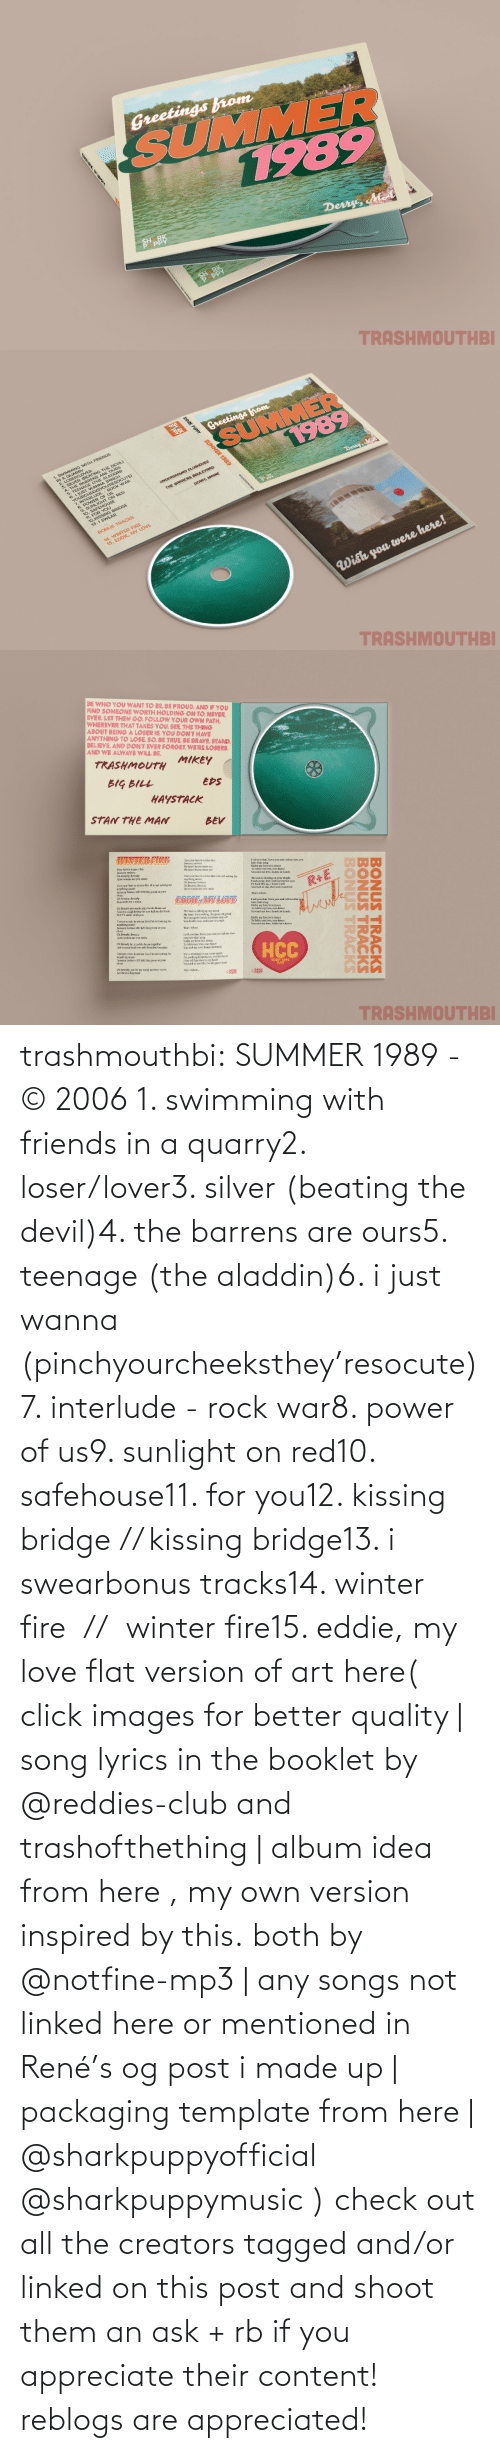 Version: trashmouthbi: SUMMER 1989 - © 2006 1. swimming with friends in a quarry2. loser/lover3. silver (beating the devil)4. the barrens are ours5. teenage (the aladdin)6. i just wanna (pinchyourcheeksthey'resocute)7. interlude - rock war8. power of us9. sunlight on red10. safehouse11. for you12. kissing bridge // kissing bridge13. i swearbonus tracks14. winter fire  //  winter fire15. eddie, my love flat version of art here( click images for better quality | song lyrics in the booklet by @reddies-club​ and trashofthething | album idea from here , my own version inspired by this. both by @notfine-mp3​ | any songs not linked here or mentioned in René's og post i made up | packaging template from here | @sharkpuppyofficial​ @sharkpuppymusic​ ) check out all the creators tagged and/or linked on this post and shoot them an ask + rb if you appreciate their content! reblogs are appreciated!